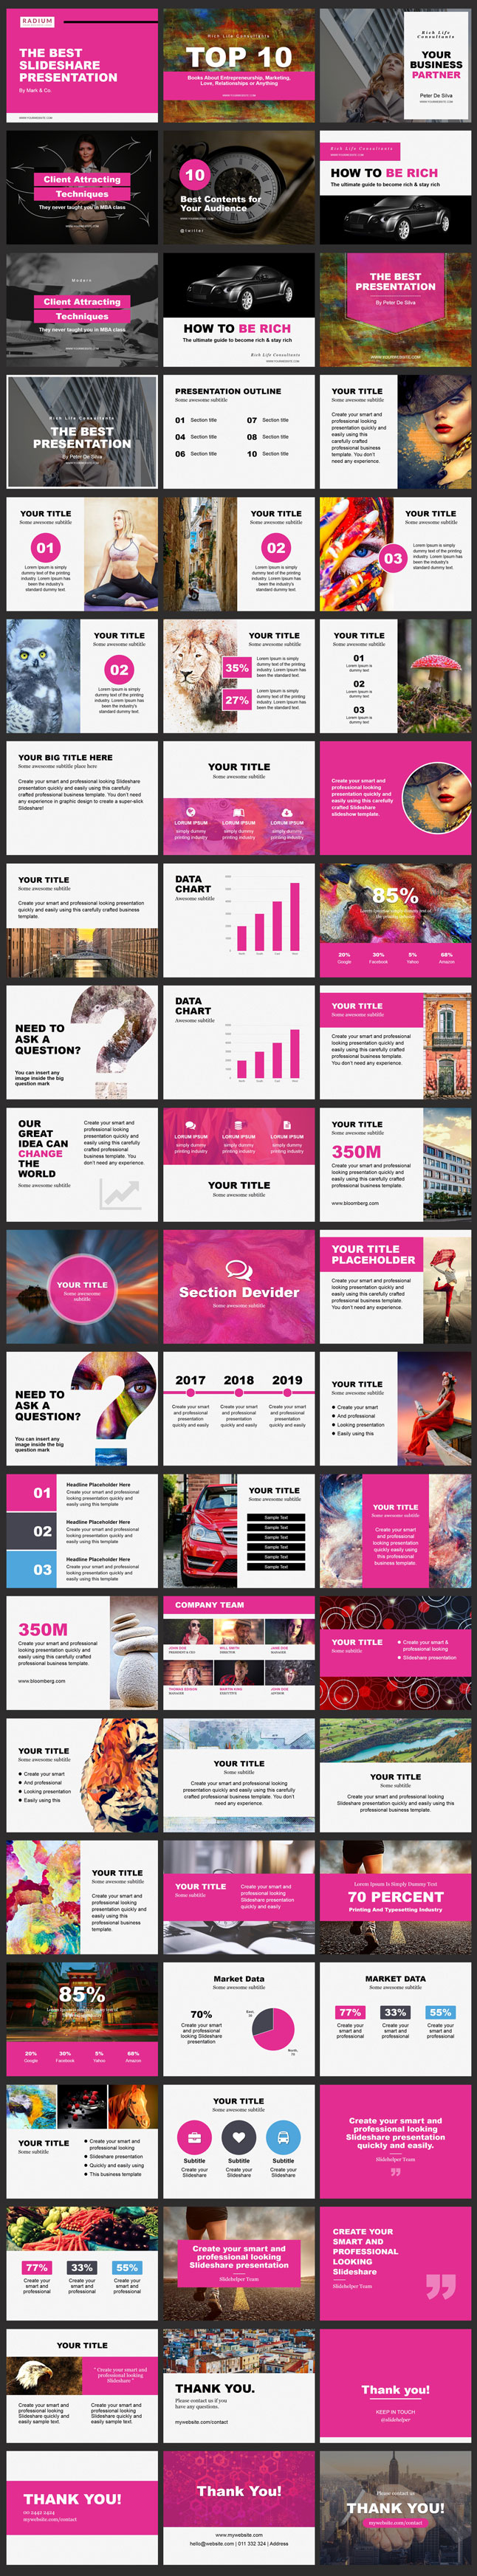 Pink color ppt template for slideshare design